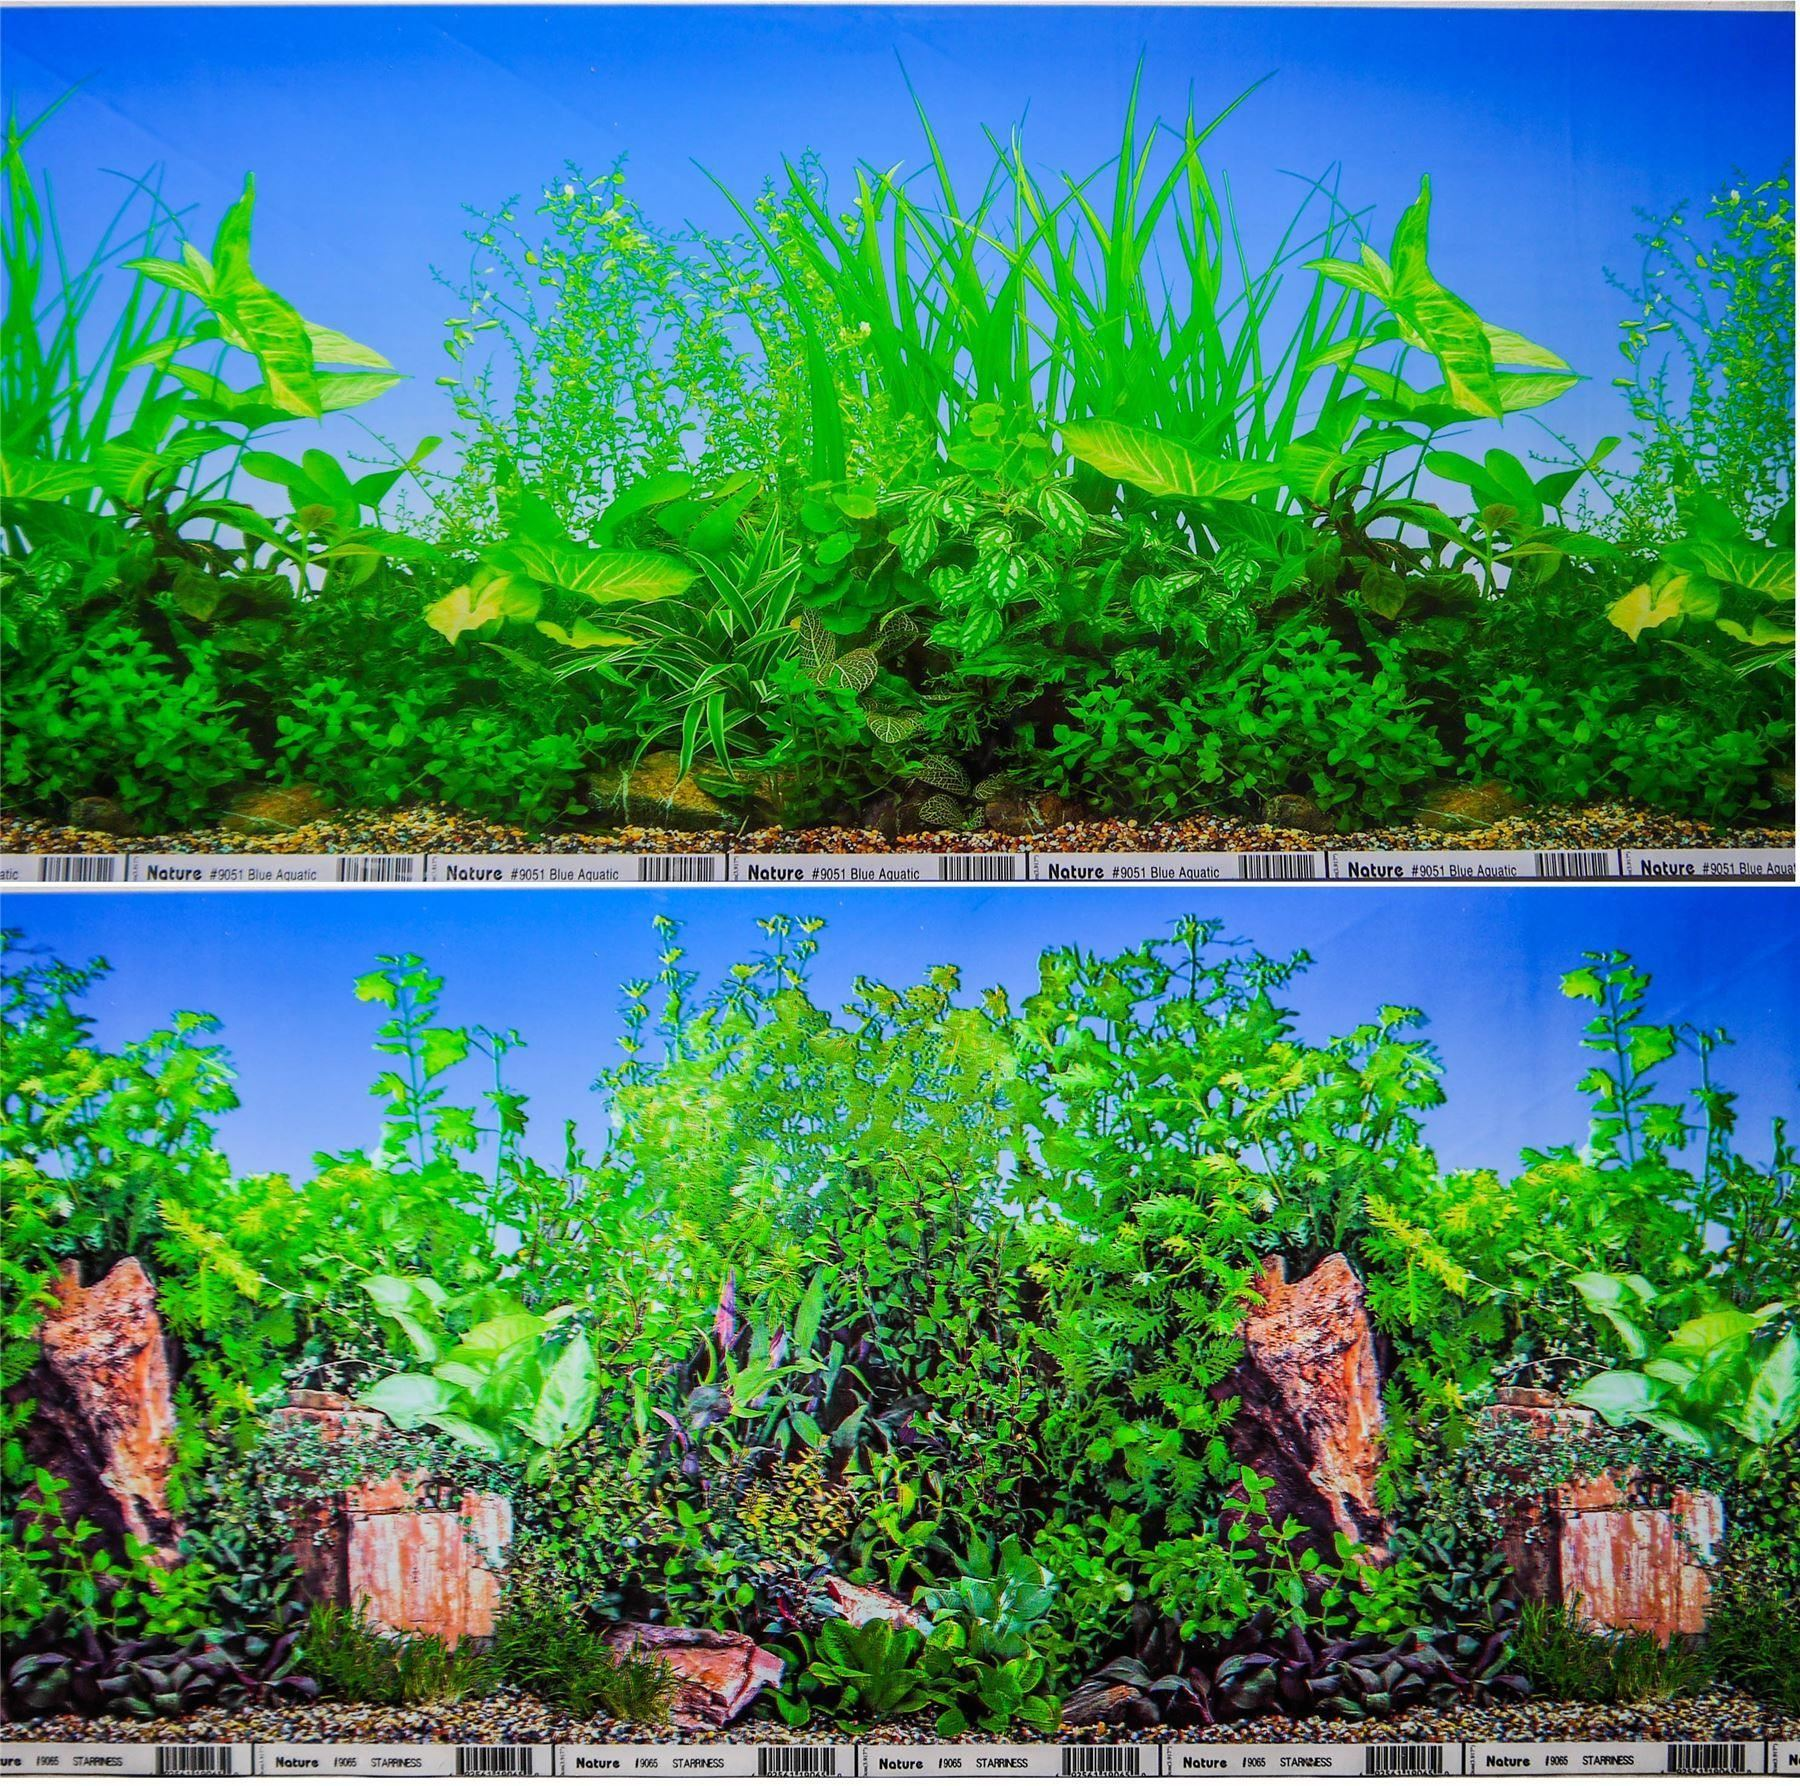 Download Underwater Landscape With Tropical Fish. Coral Reef Scene For Aquarium  Background Or Snorkeling Banner